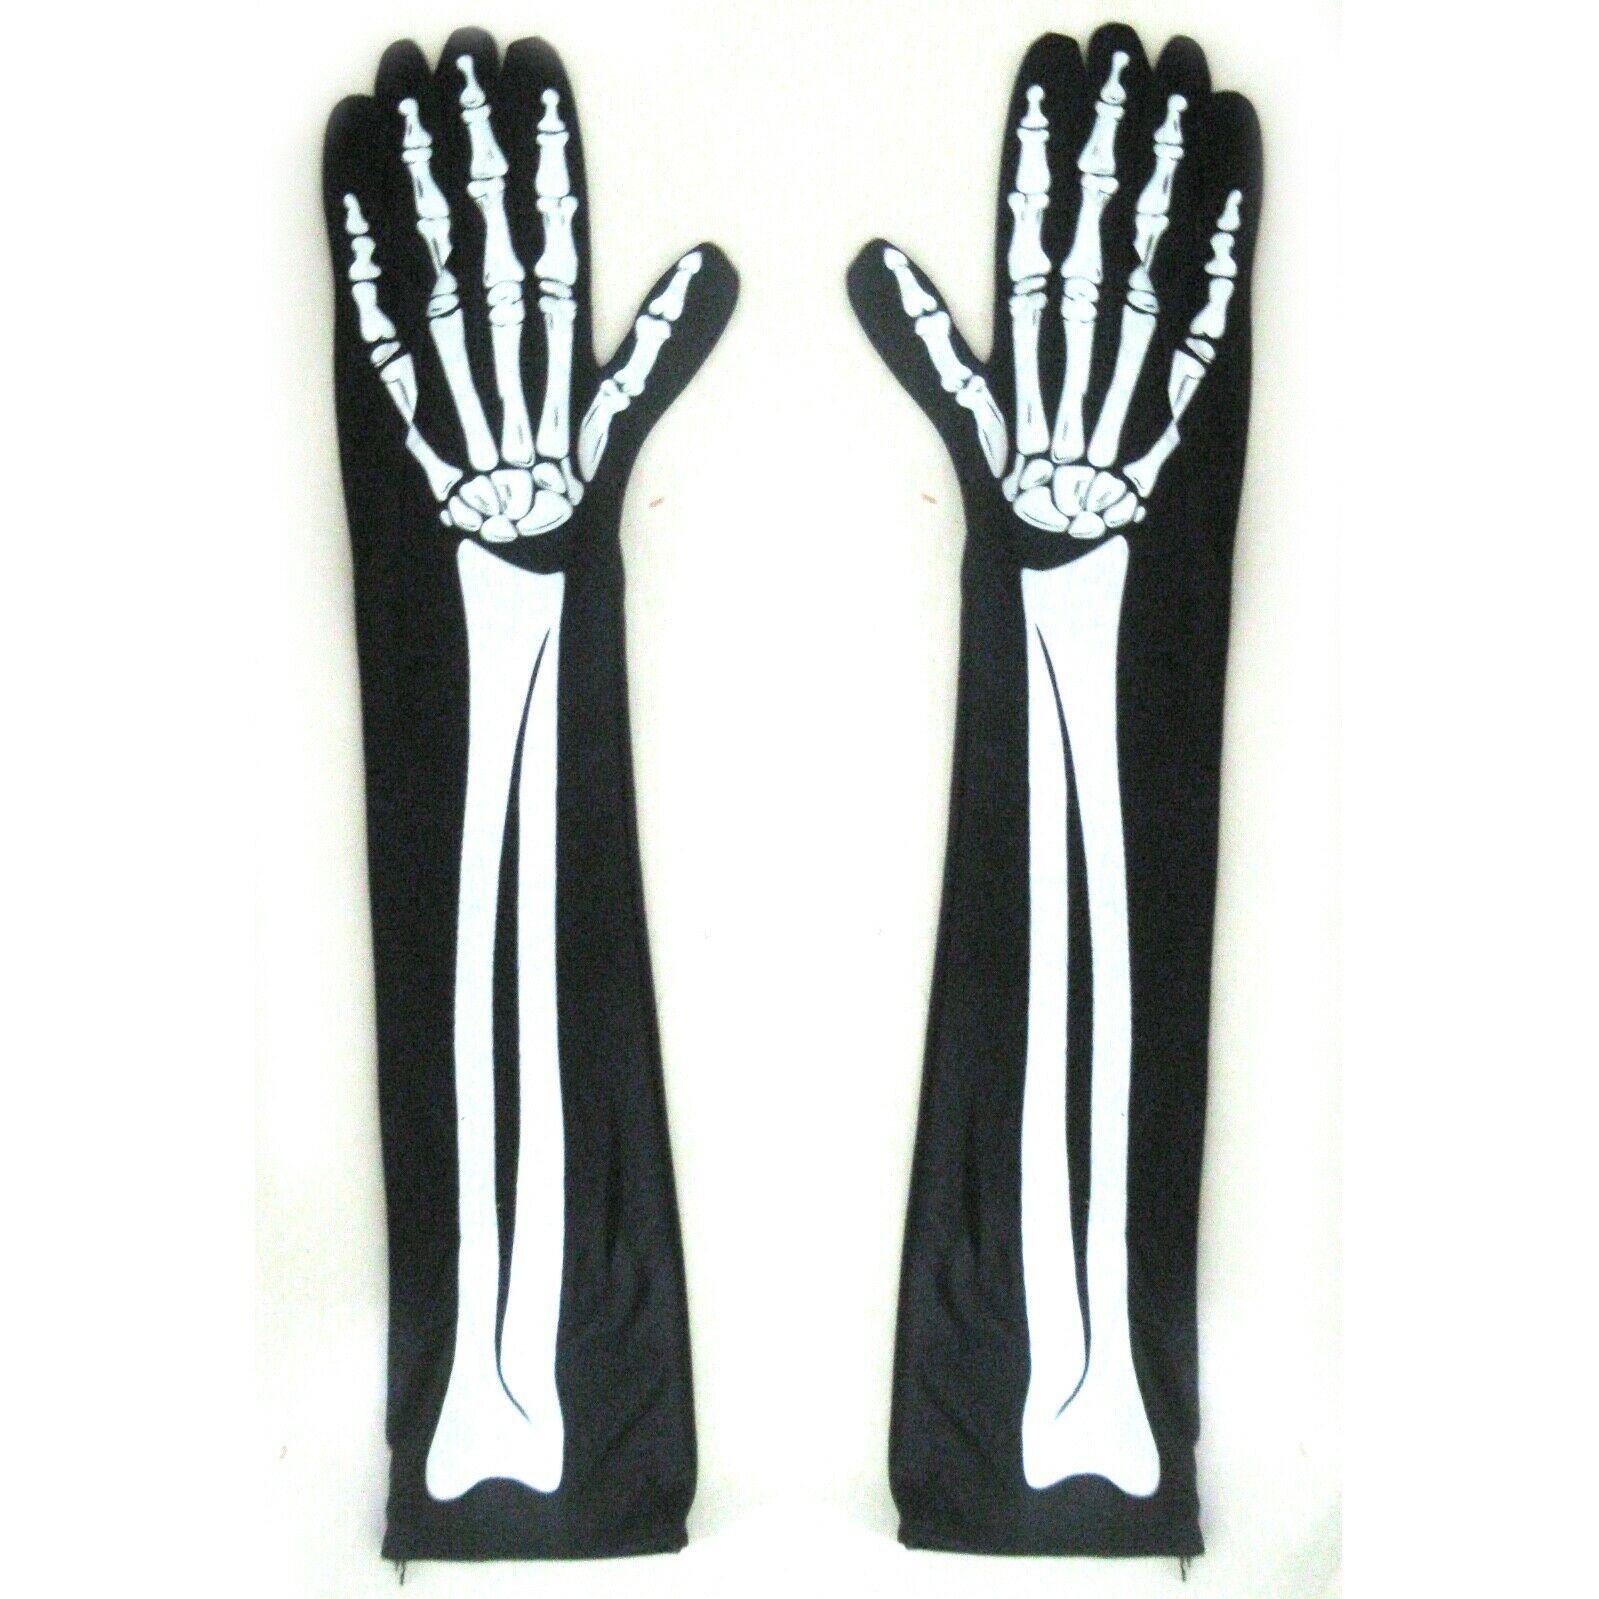 Skeleton Gloves Sexy Halloween Gloves Arms Hands Costume Women's Accessory 15